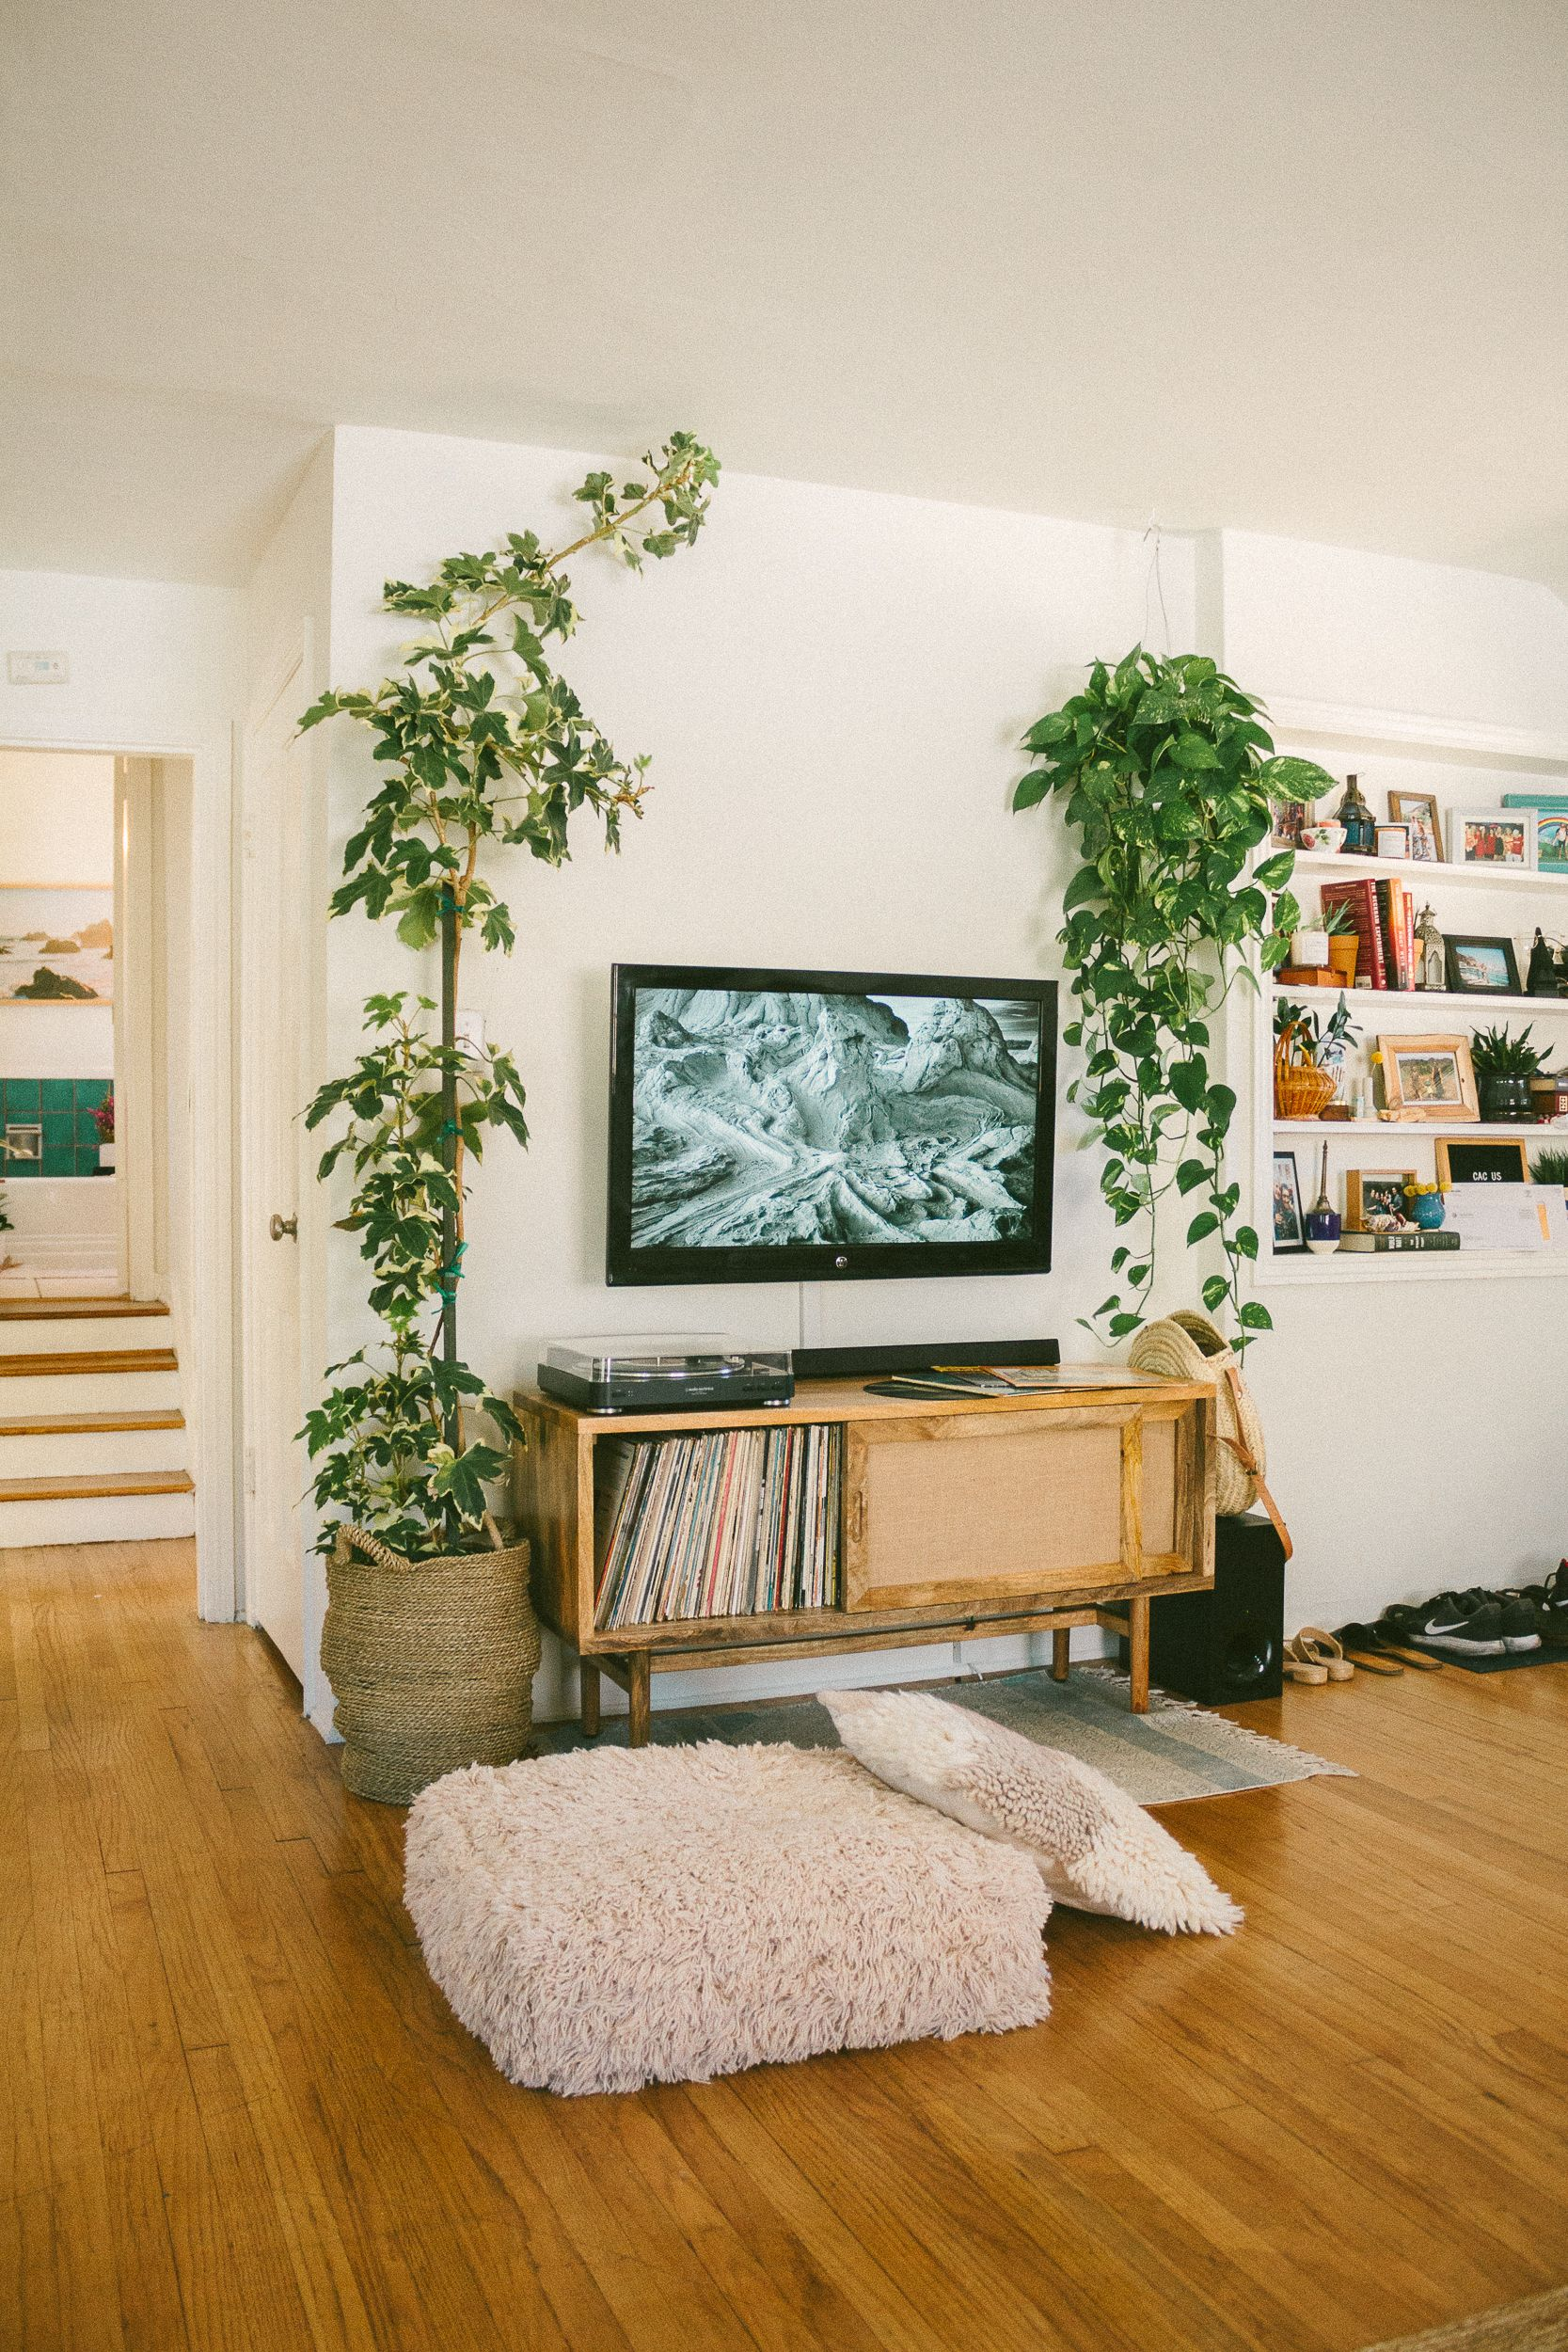 8 Tv Wall Design Ideas For Your Living Room: Before & After: How To Transform Your TV Wall